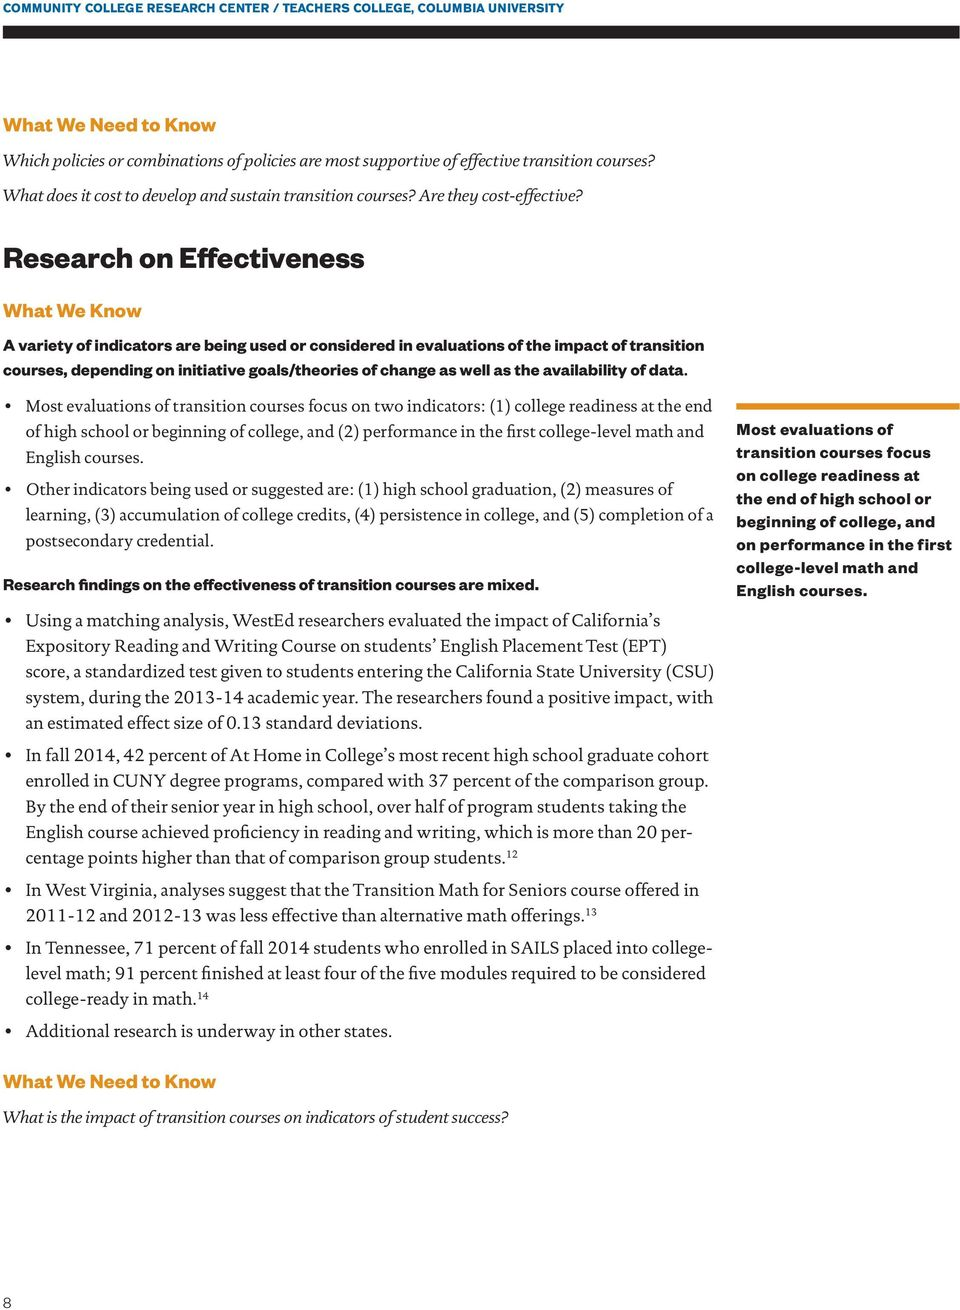 Research on Effectiveness A variety of indicators are being used or considered in evaluations of the impact of transition courses, depending on initiative goals/theories of change as well as the